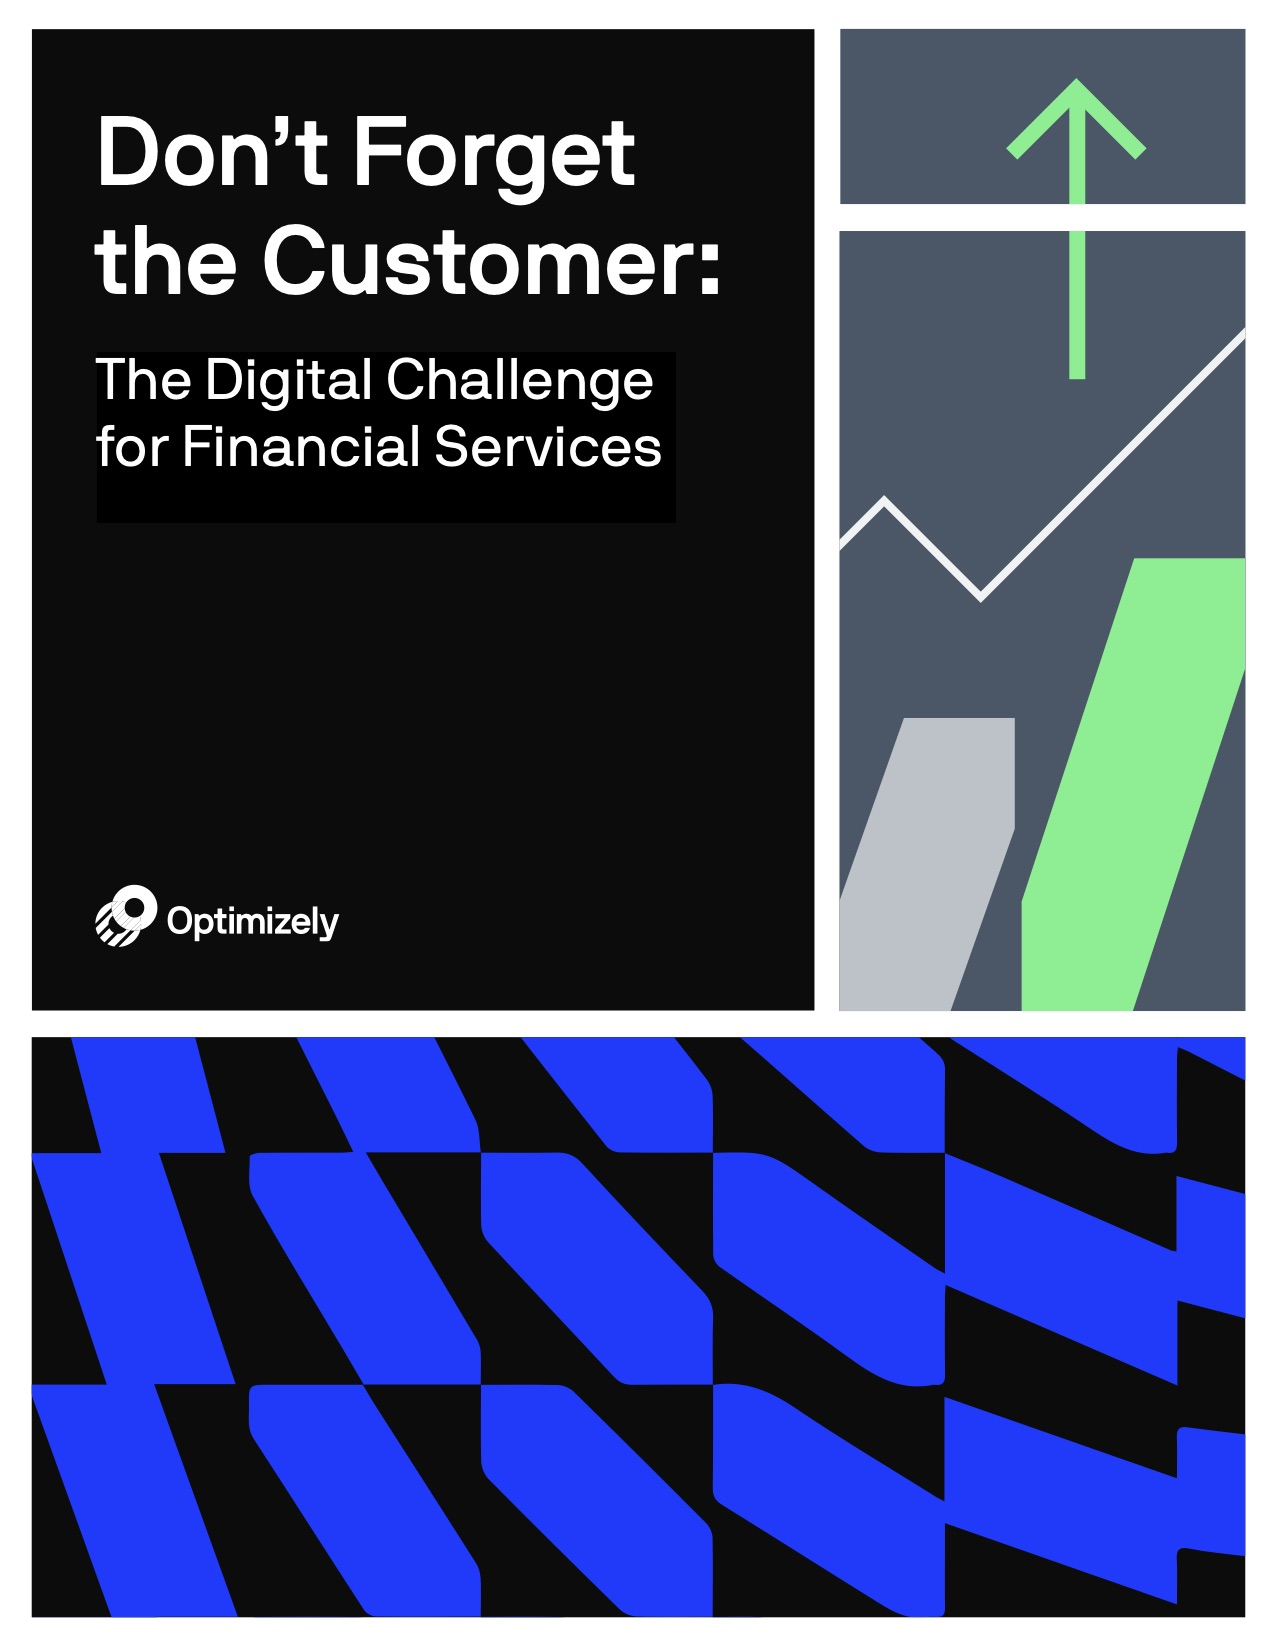 Don't Forget the Customer: The Digital Challenge for Financial Services